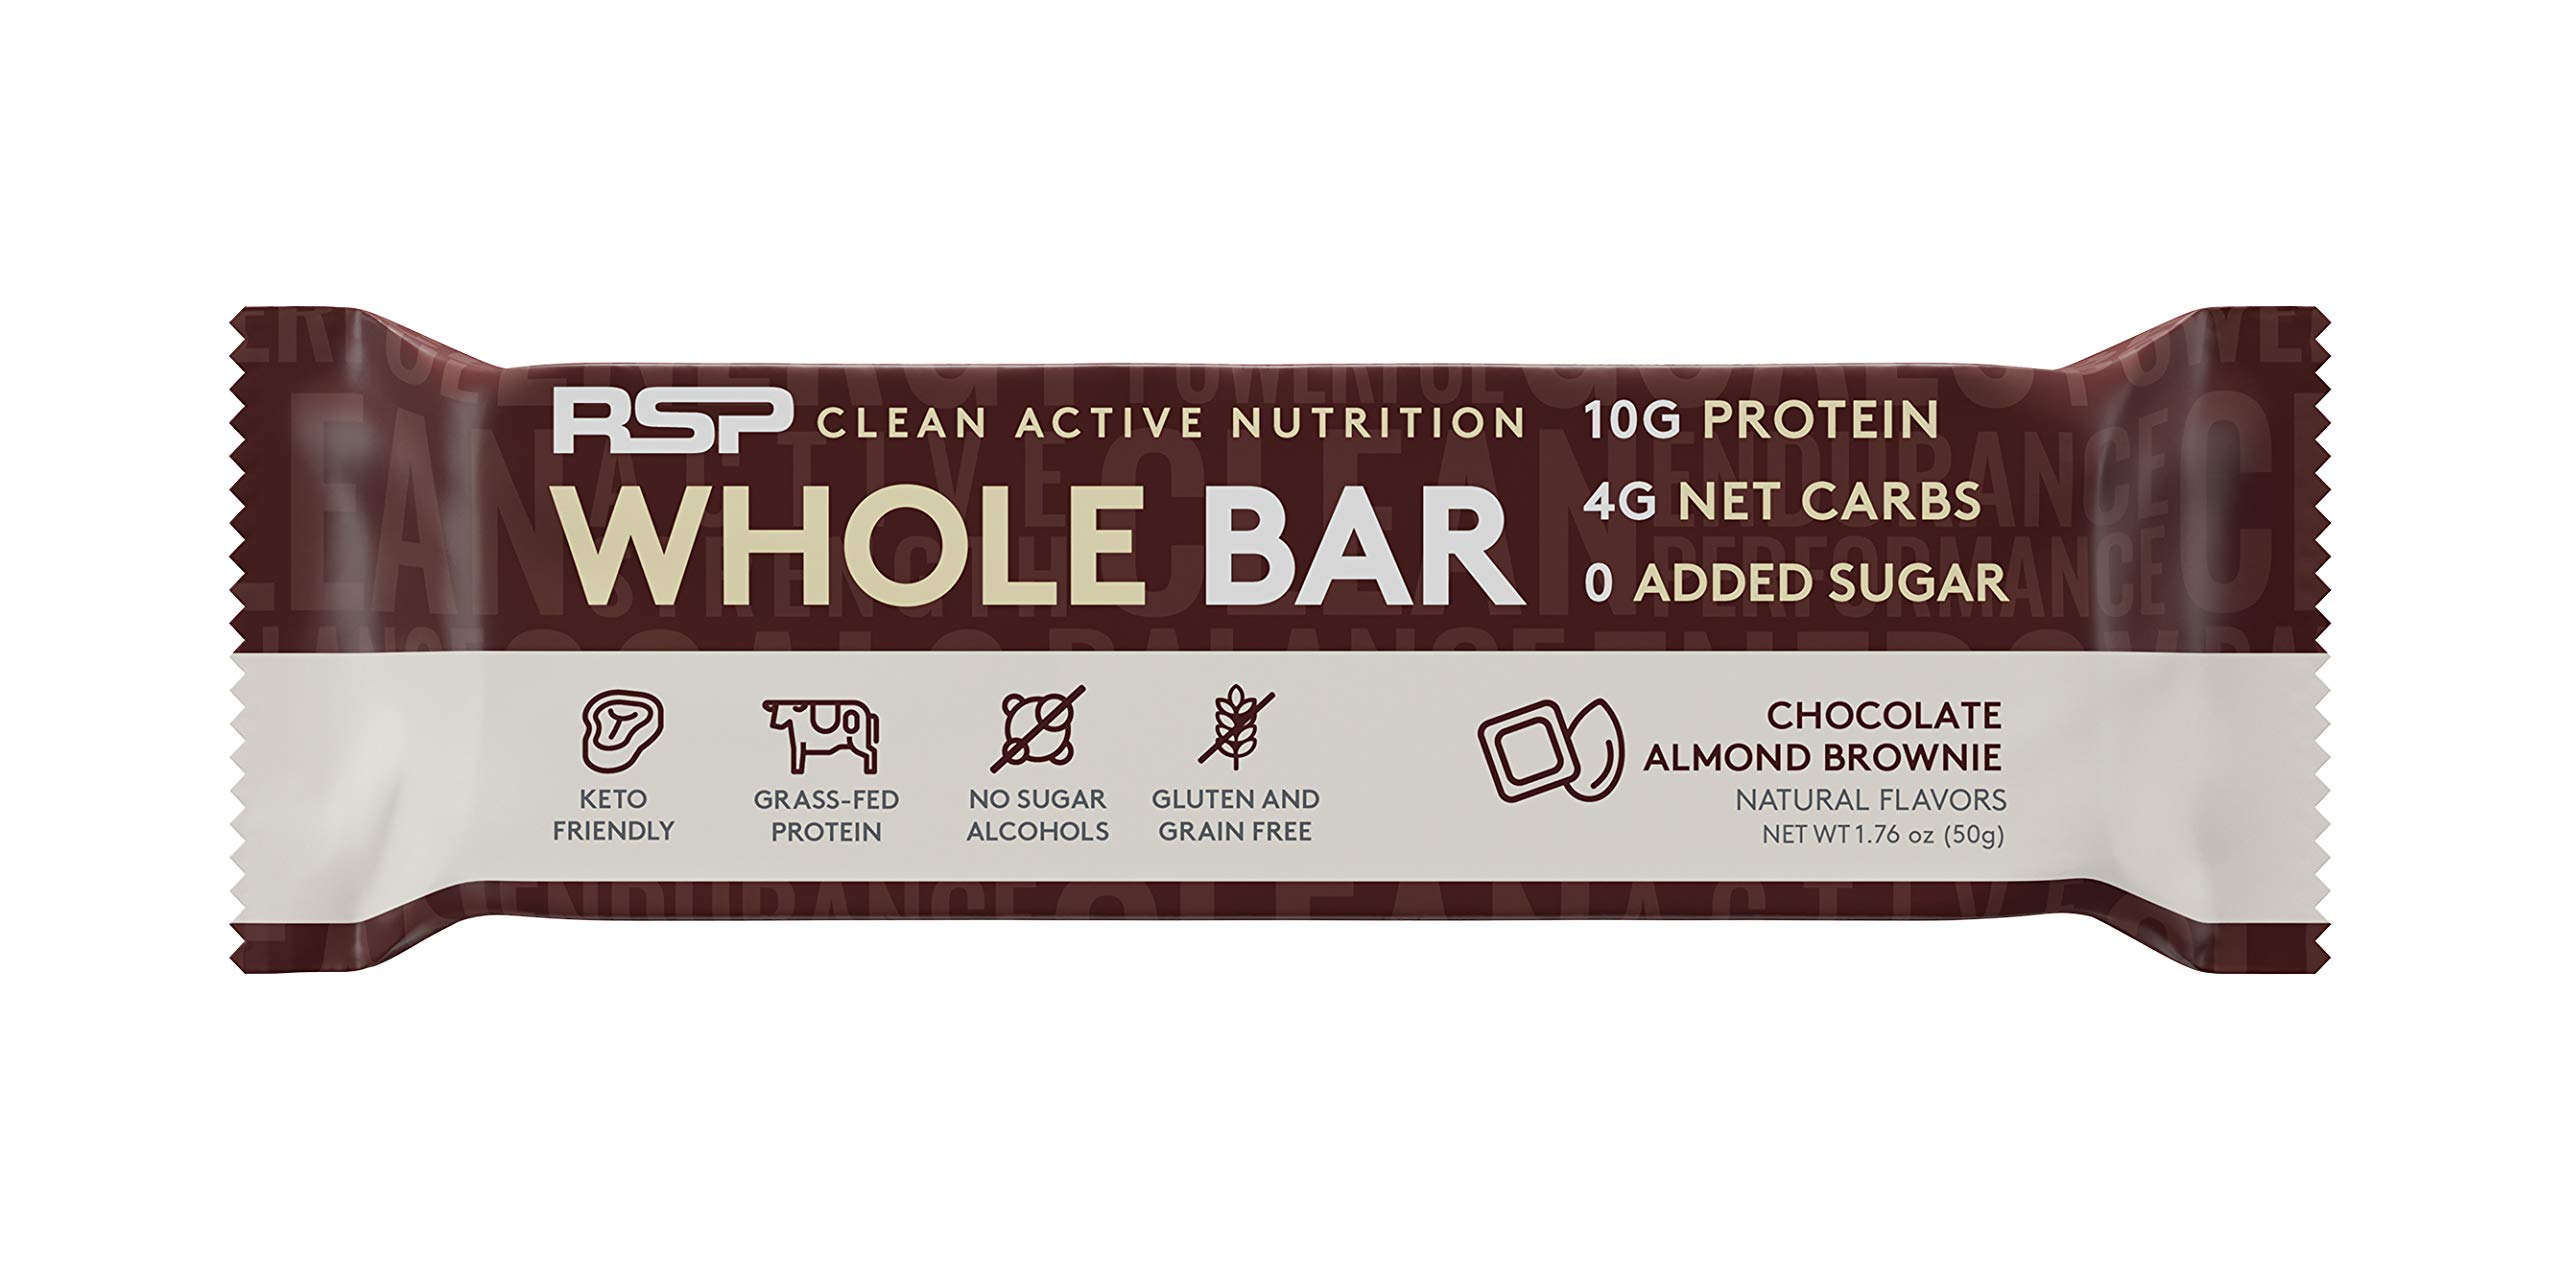 RSP Whole Bar - Low Carb Keto Protein Bar + Quality Fats, 10g Grass Fed Protein, 4g Net Carbs, 19g Fat, Zero Added Sugar, Perfect Keto Snack, Gluten Free, 12 Pack (Chocolate Almond Brownie) by RSP NUTRITION